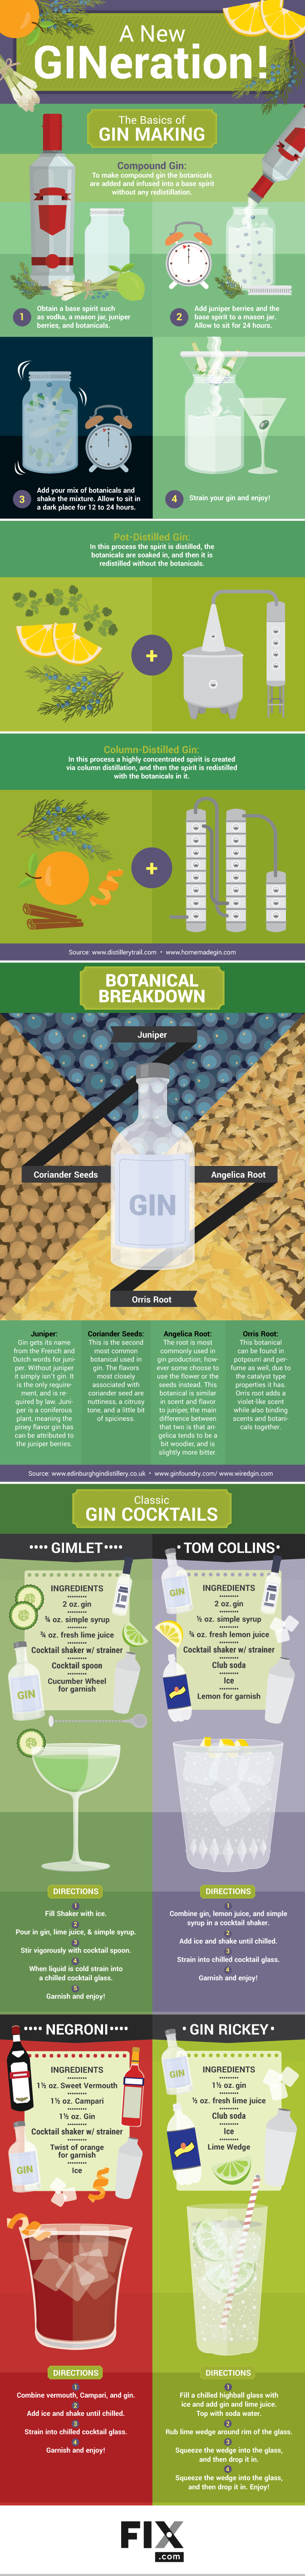 Gin is a neutral liquor that gets its flavor from a variety of different botanicals. Learn more here!